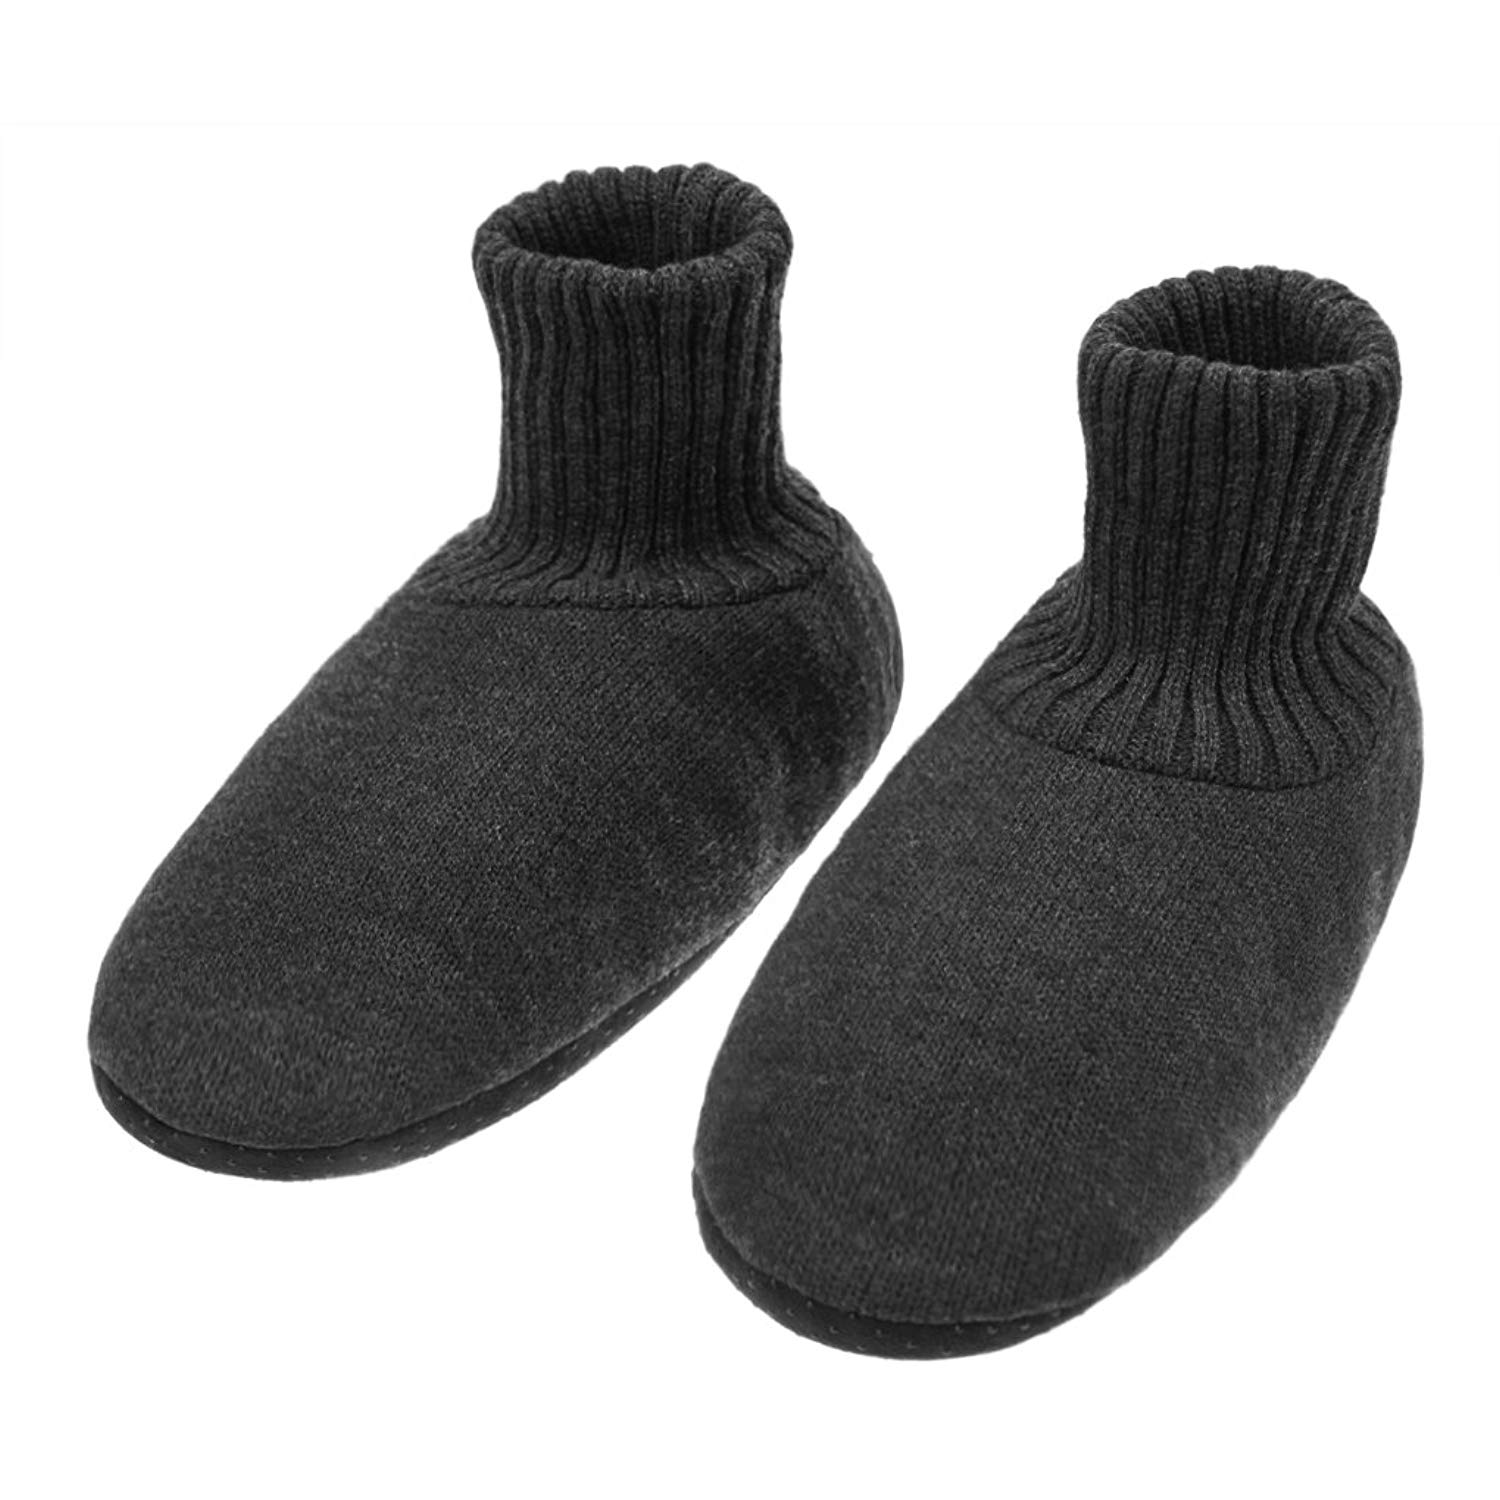 e96ff44f4ebd7b Winter Warm Cozy Slipper Socks for Women Men Soft Thick Fleece Lined Cable  Knit Indoor slippers